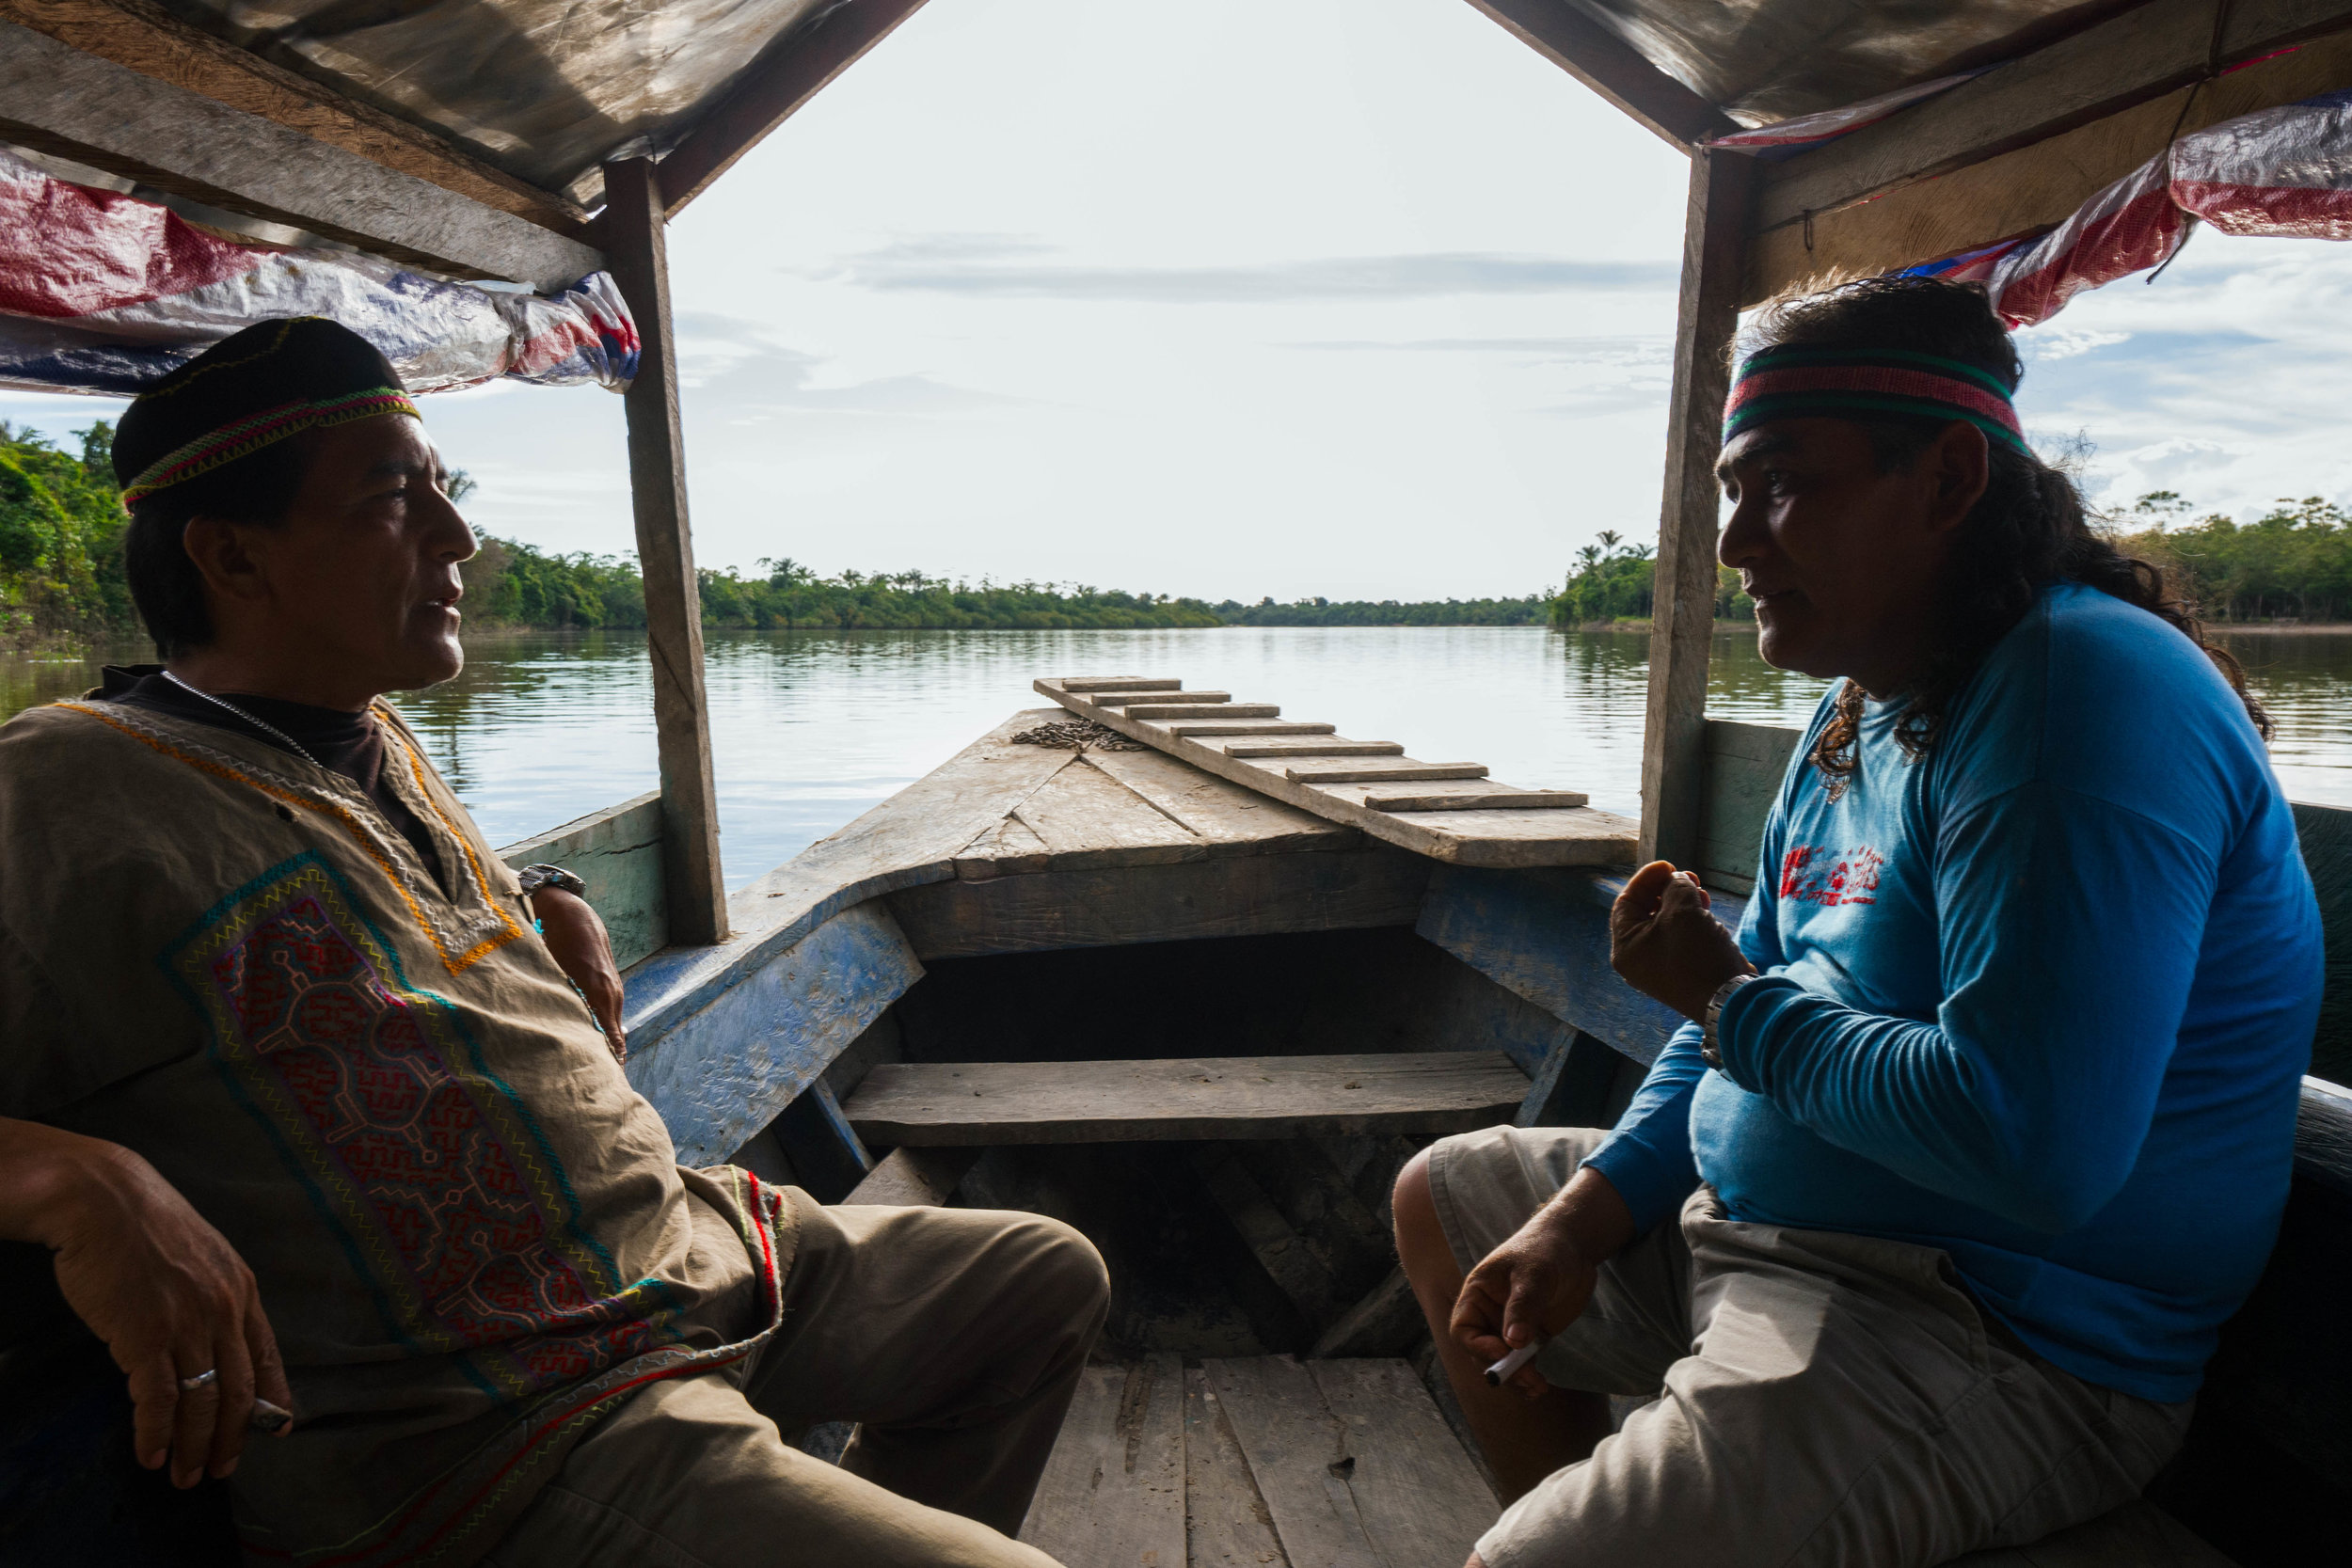 SHAMAN MAGNO ZAMBRANO PANDURO, RIGHT, AND HIS BROTHER TRAVELING ON THE AMAZON RIVER. CREDIT: LURE